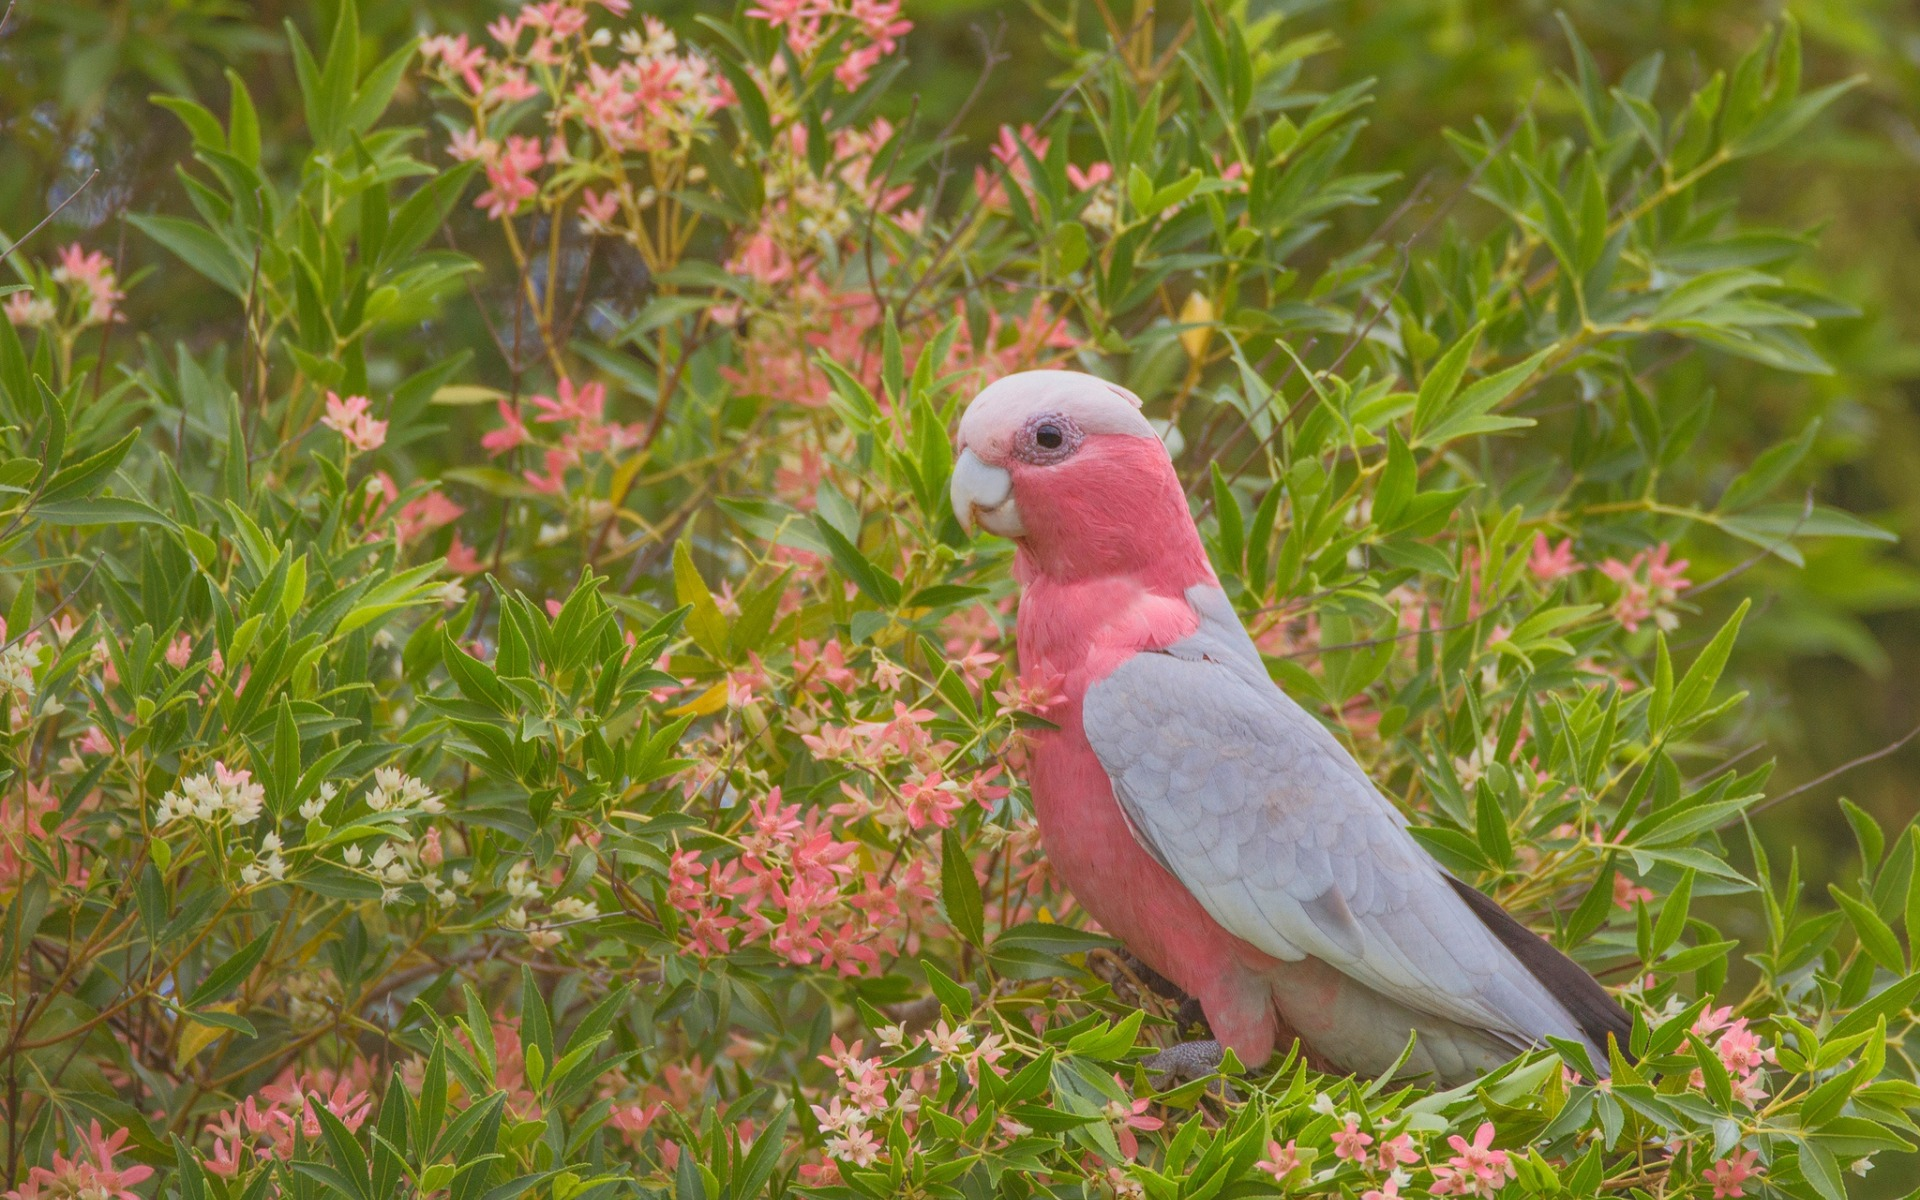 galah, rose-breasted cockatoo, rosa papagei, schöne rosa vogel, australien, galah cockatoo, rosa cockatoo, parrot